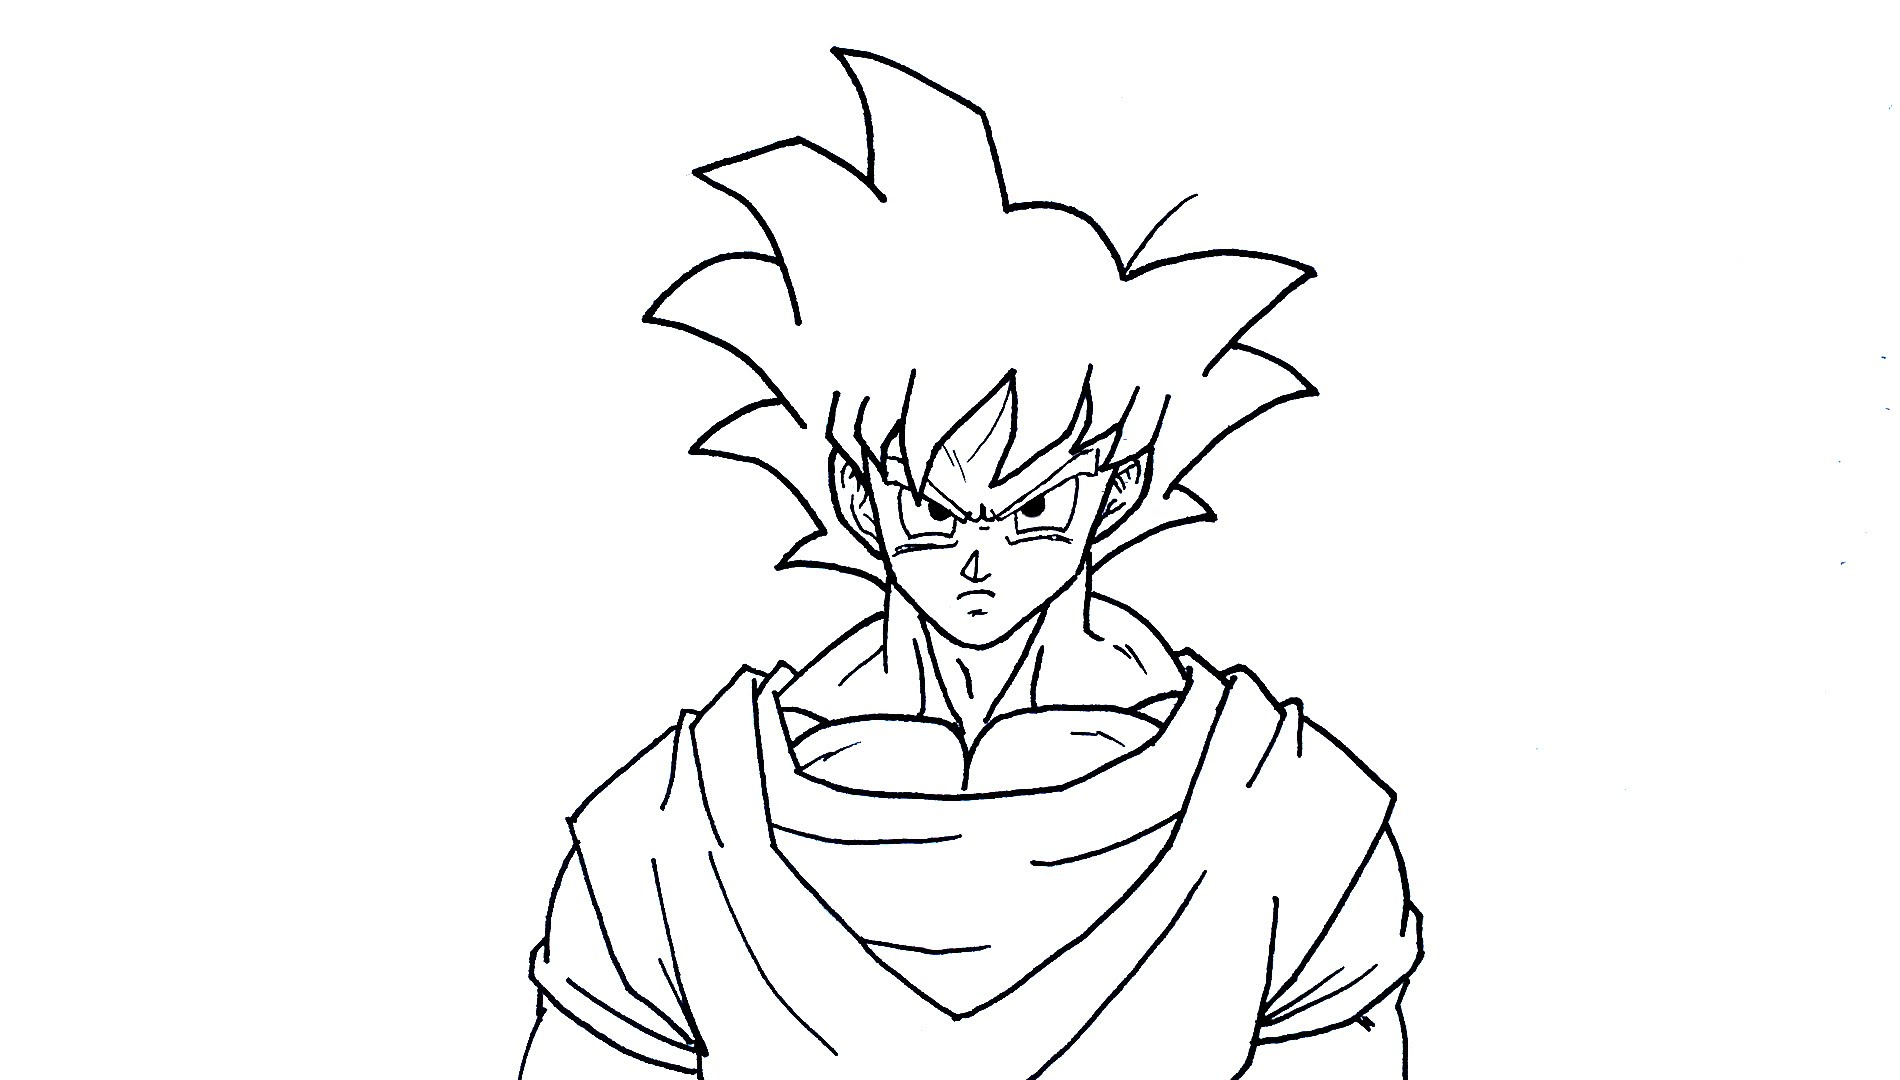 Dbz Goku Drawing at GetDrawings.com | Free for personal use Dbz Goku ...